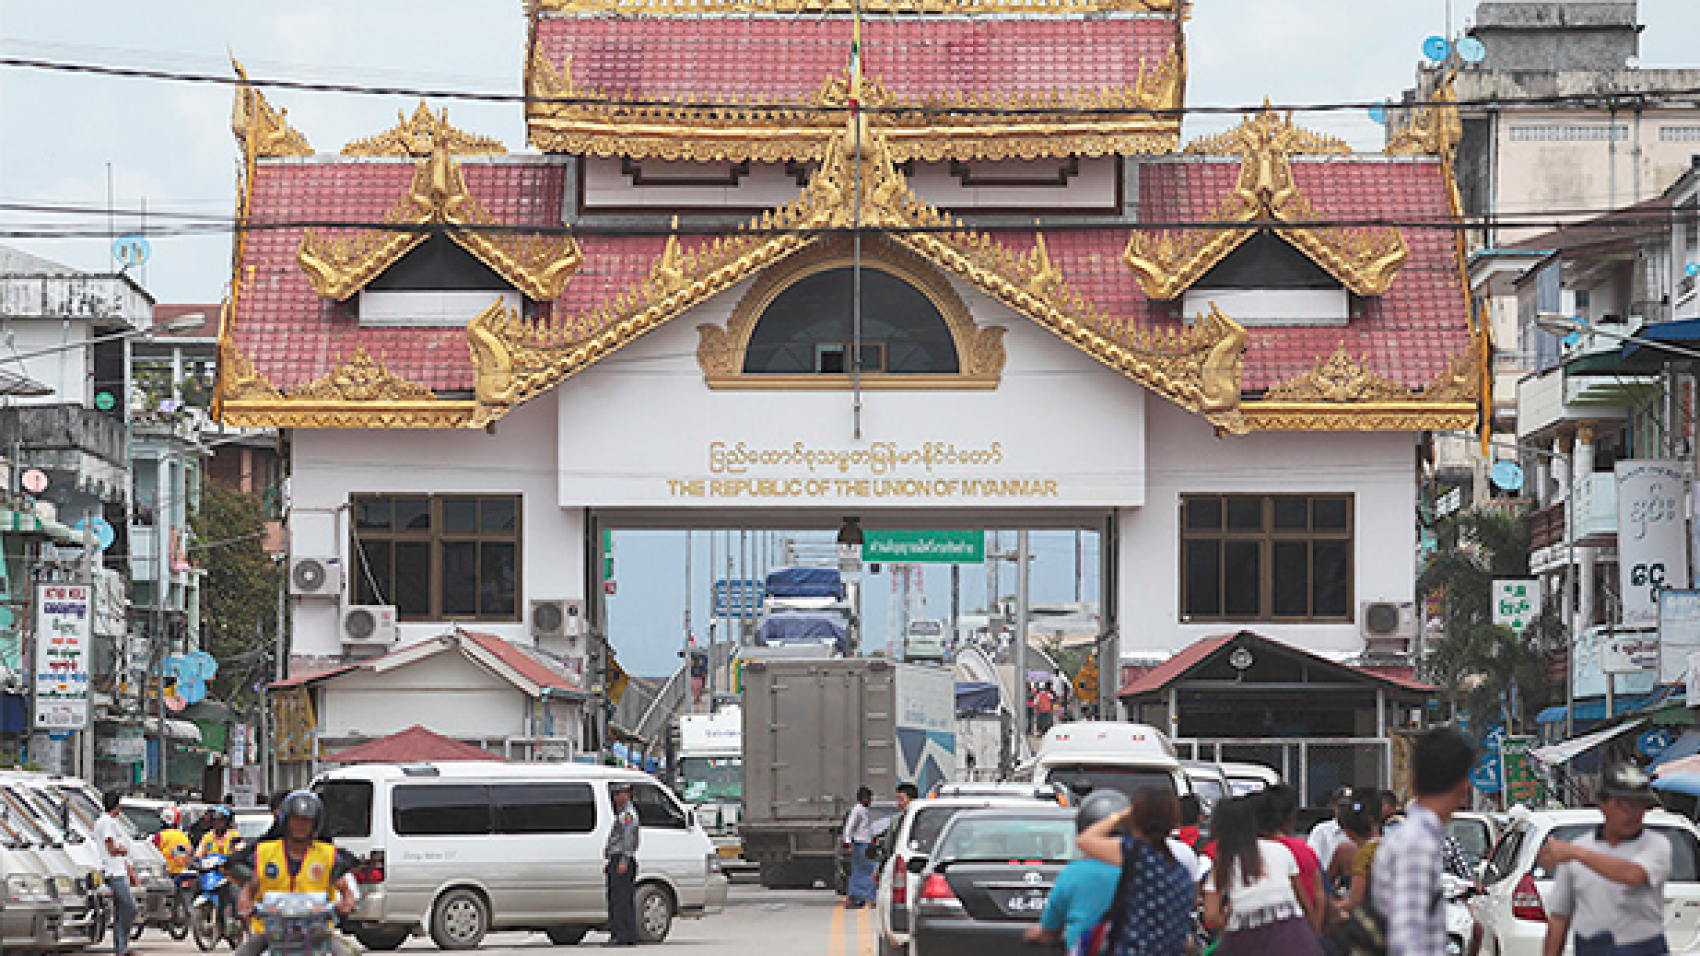 The-Great-Expectations-of-Local-Residents-of-Myawaddy-large